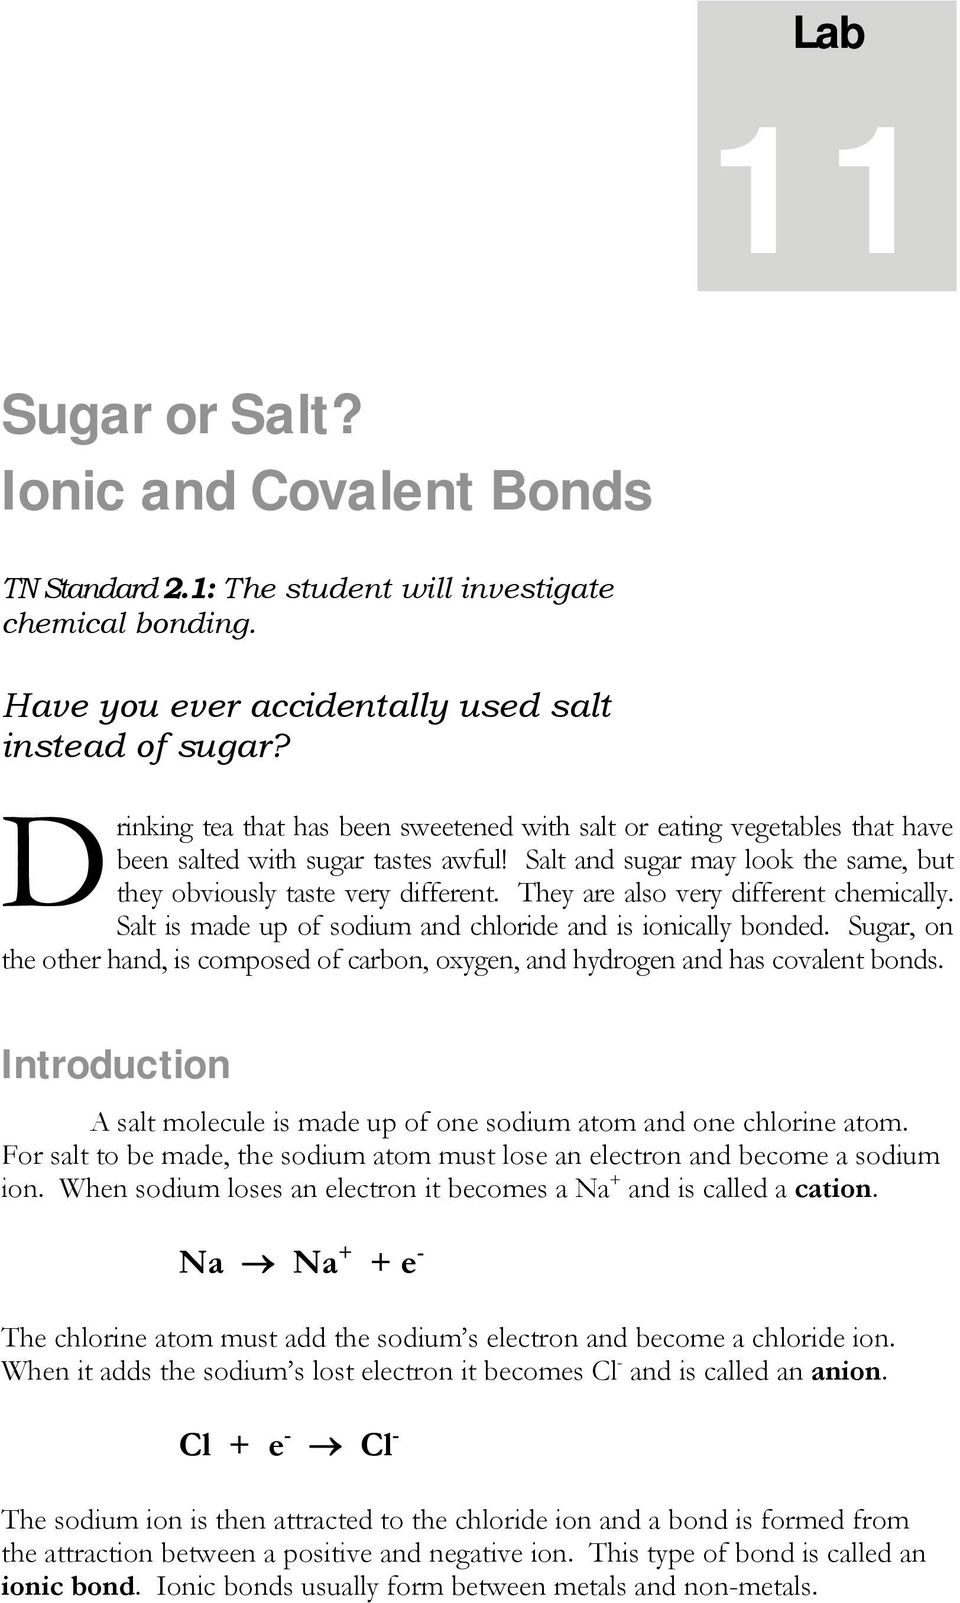 They are also very different chemically. Salt is made up of sodium and chloride and is ionically bonded. Sugar, on the other hand, is composed of carbon, oxygen, and hydrogen and has covalent bonds.